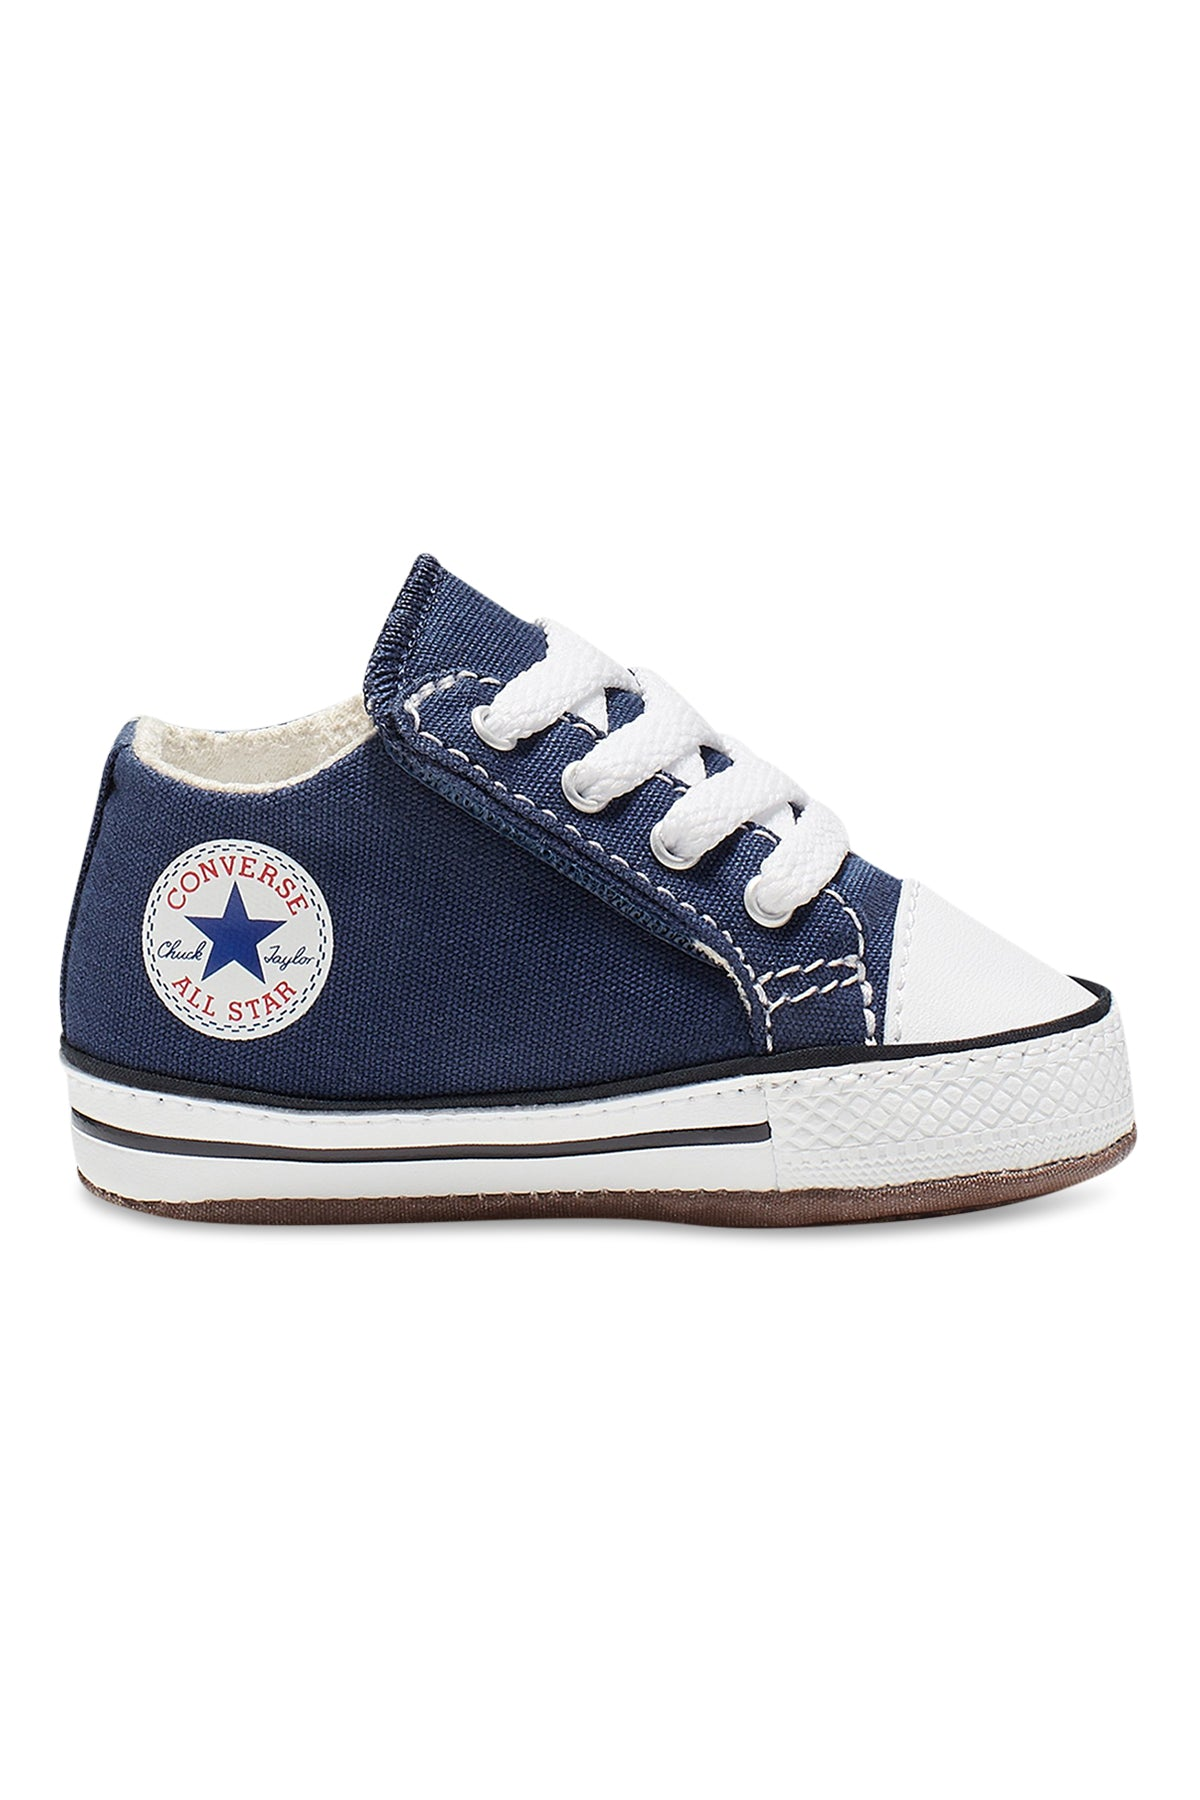 Converse Infant CT Cribster Mid Navy